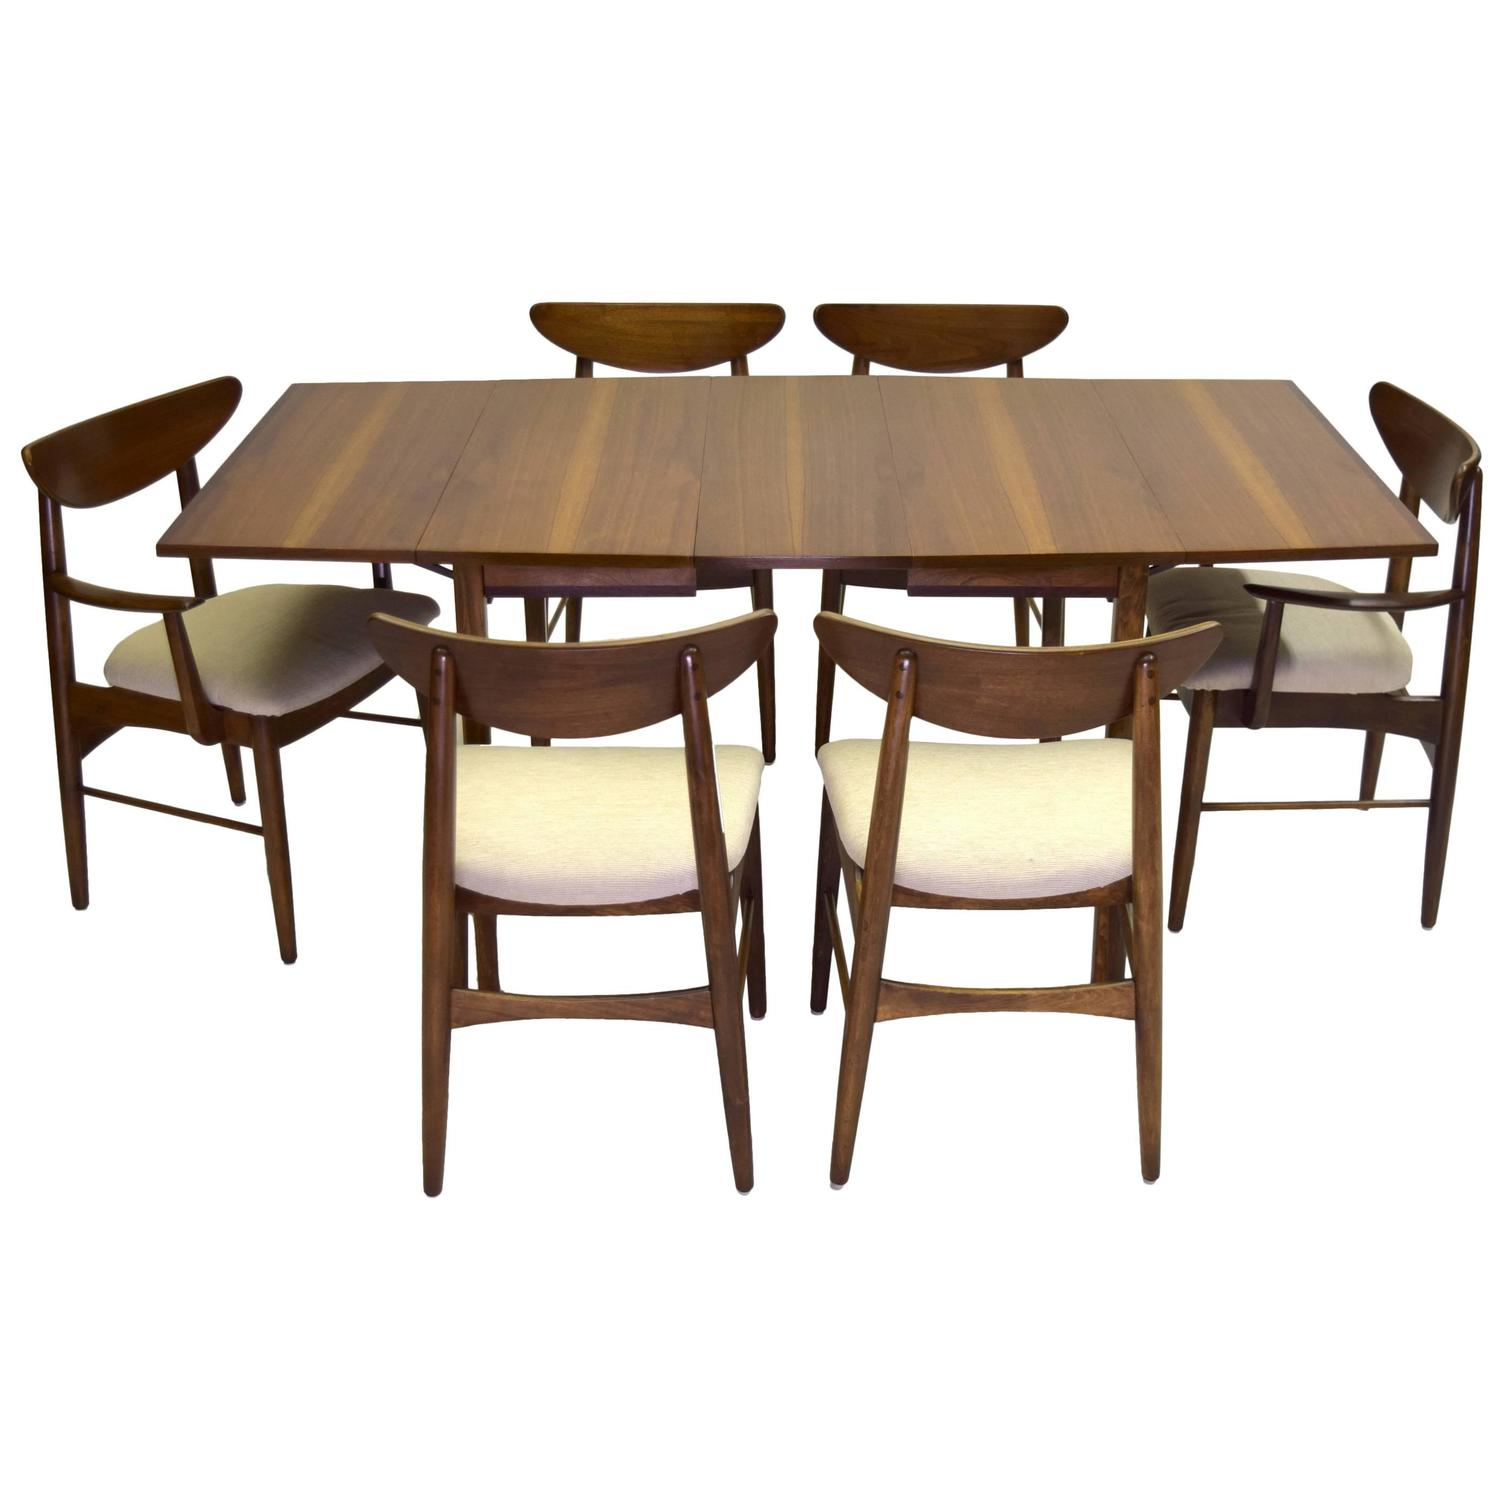 chairs dining table with extension leaf and the china cabinet hutch